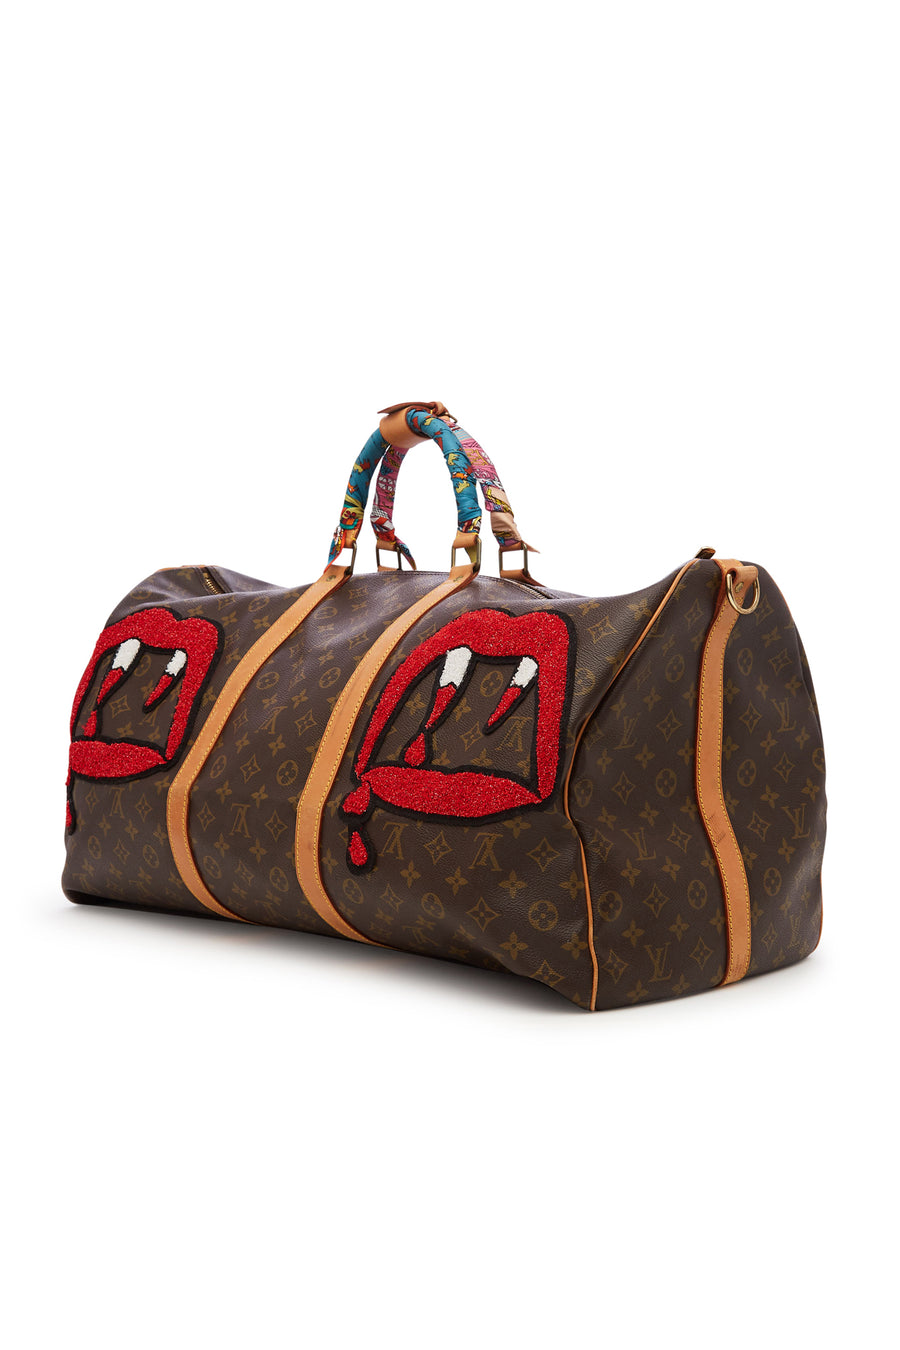 "Vintage Monogram Louis Vuitton Keepall 60 ""Pacman"" Duffle"